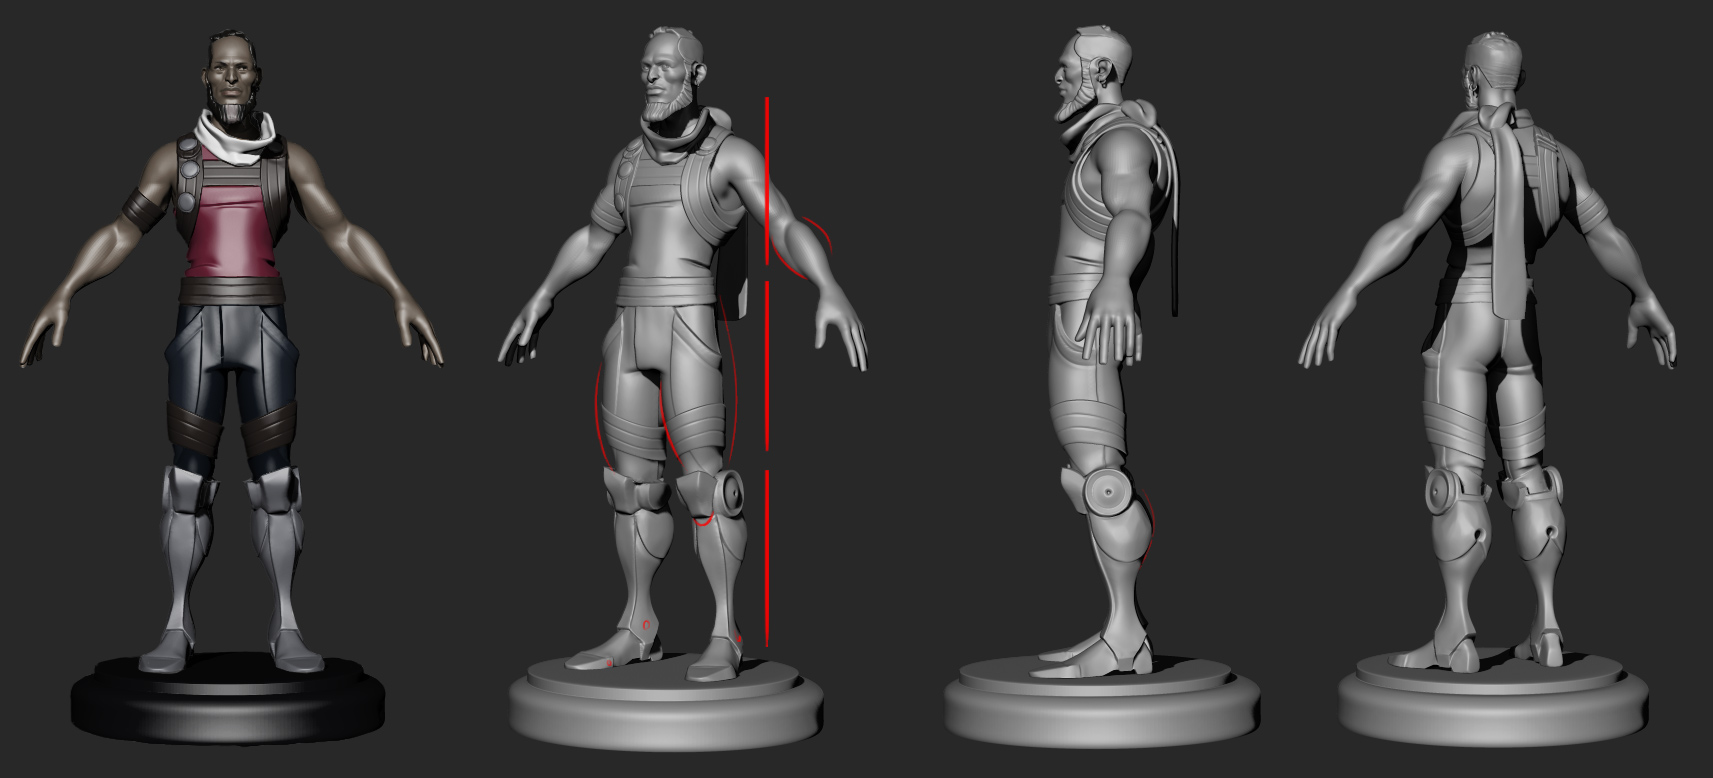 Shof's first pass at Denarii looked great at the time. In retrospect it lacks the definition and sense of contained power that's emblematic of the character. You can see his red sketch lines as he tries to figure out how to bring some of that to the model.